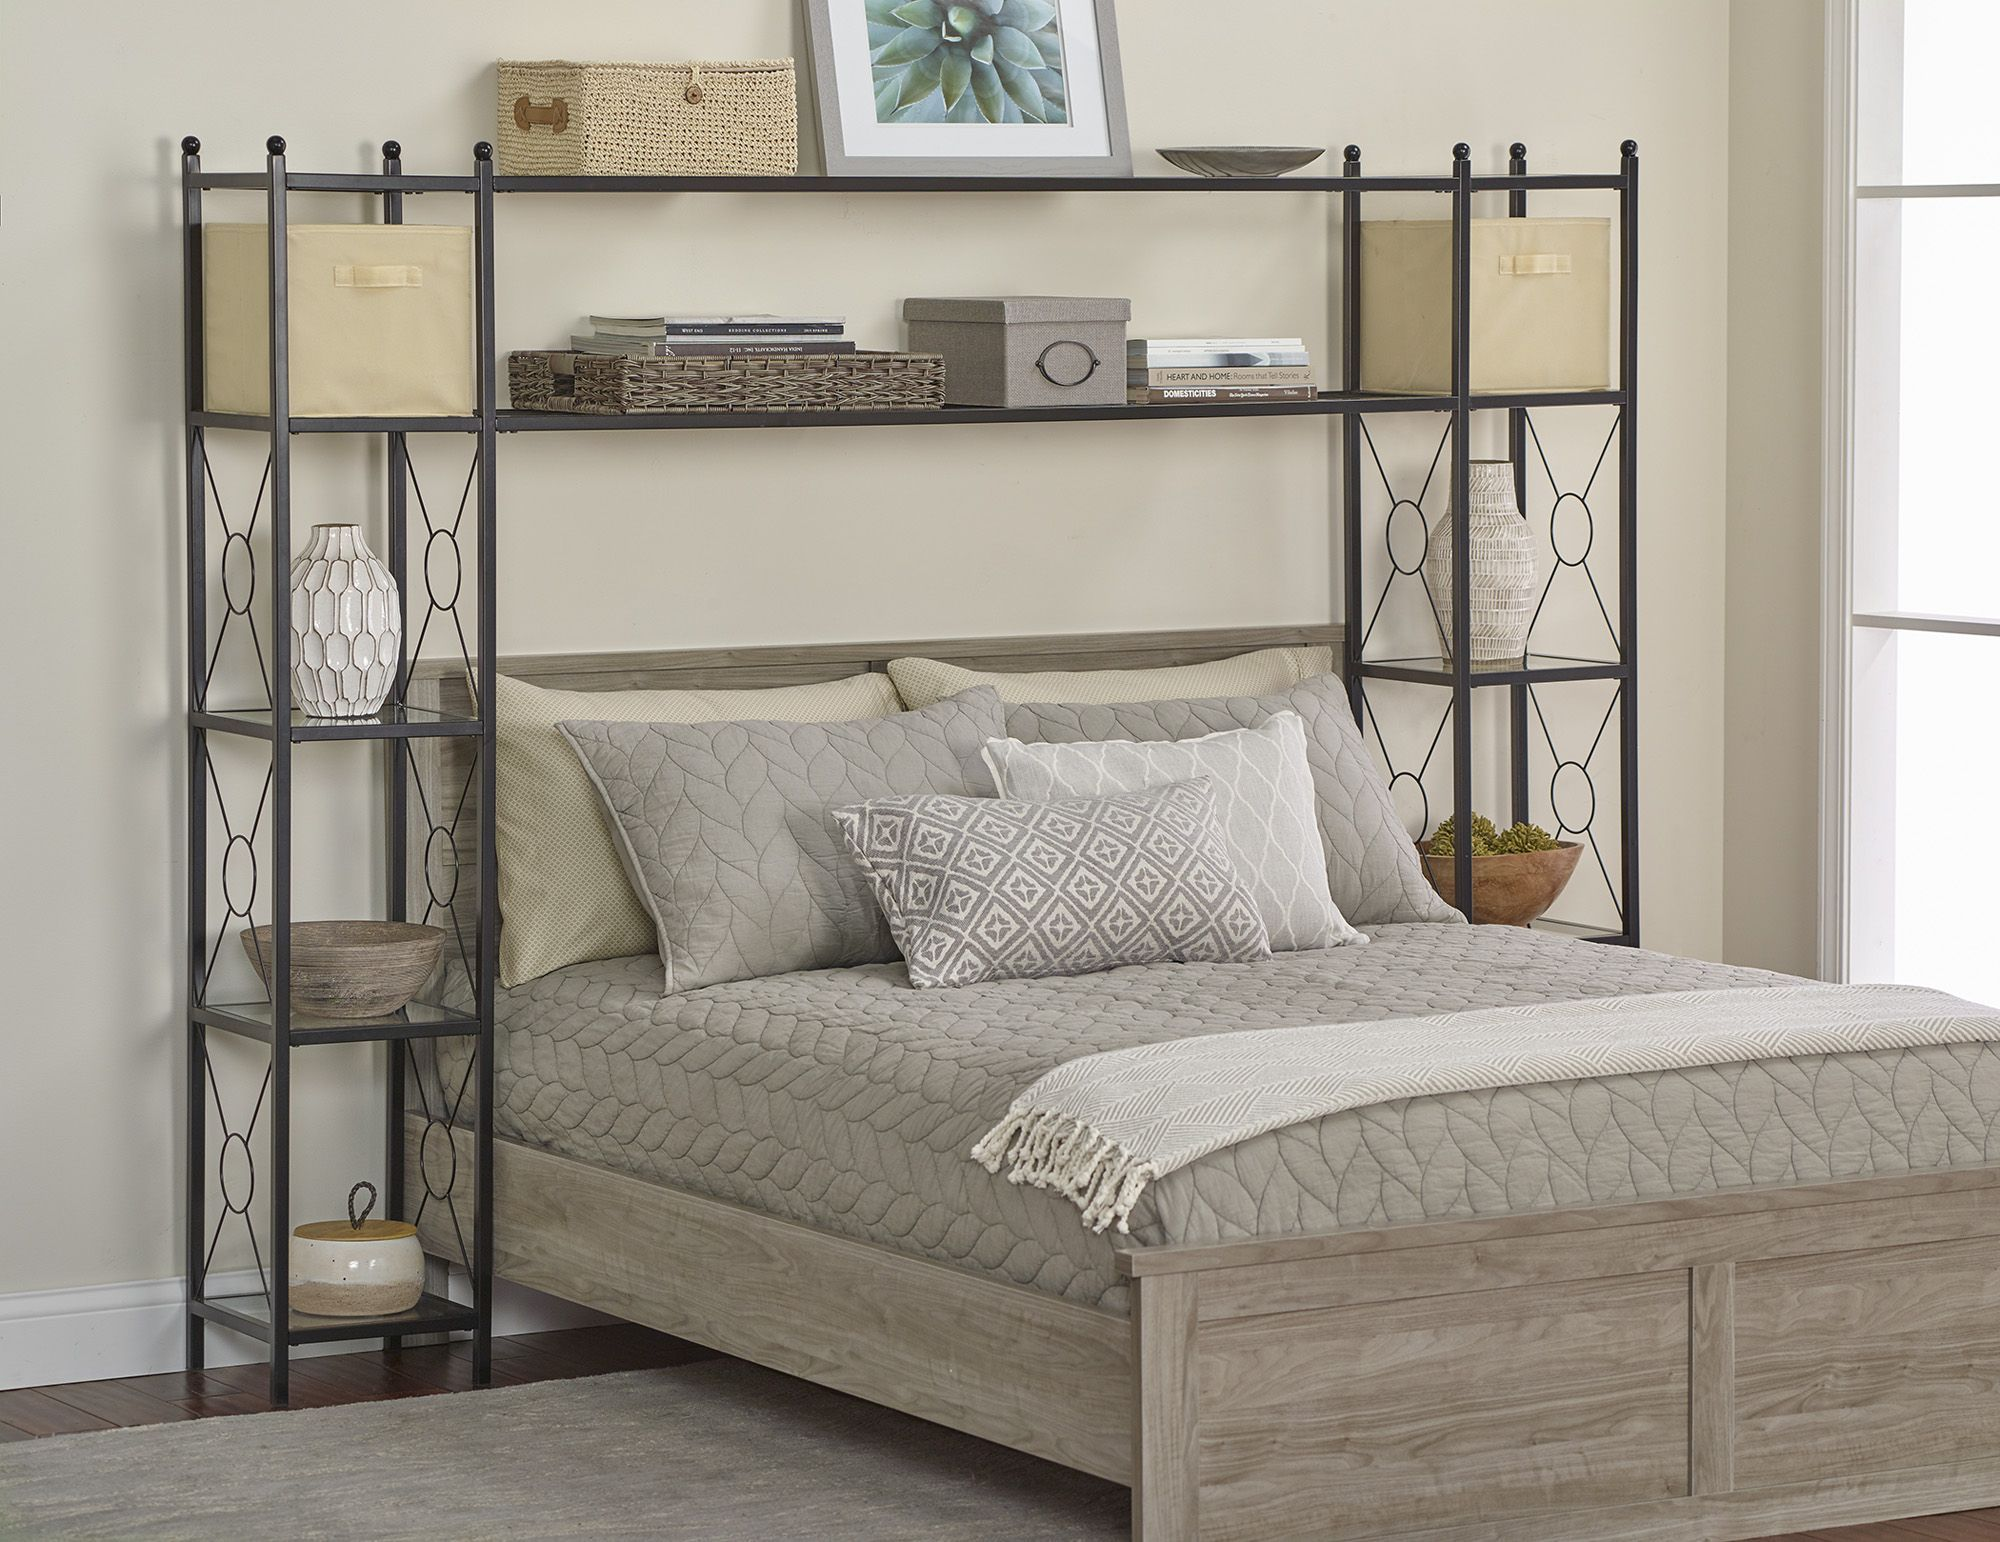 Fingerhut alcove OvertheBed Metal Organizer with